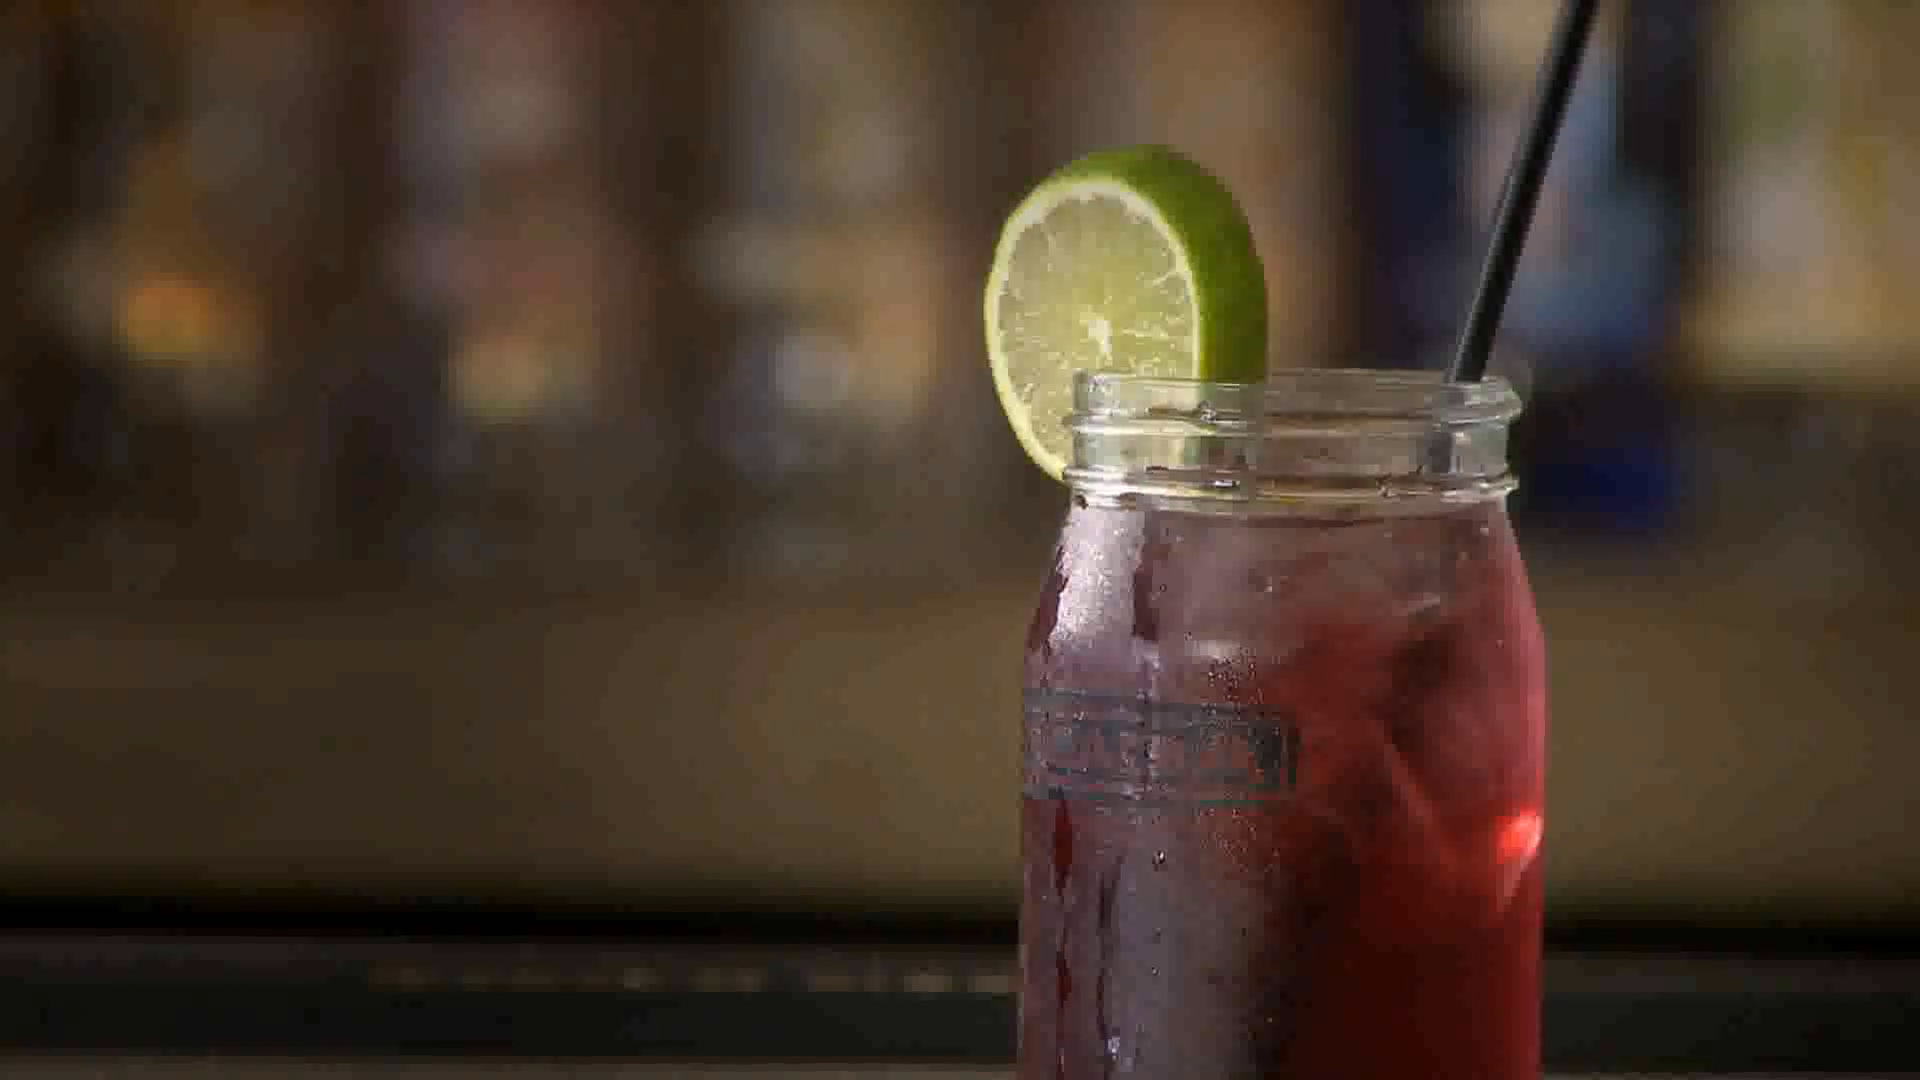 Drink of the Day: Mardi Gras Purple Punch